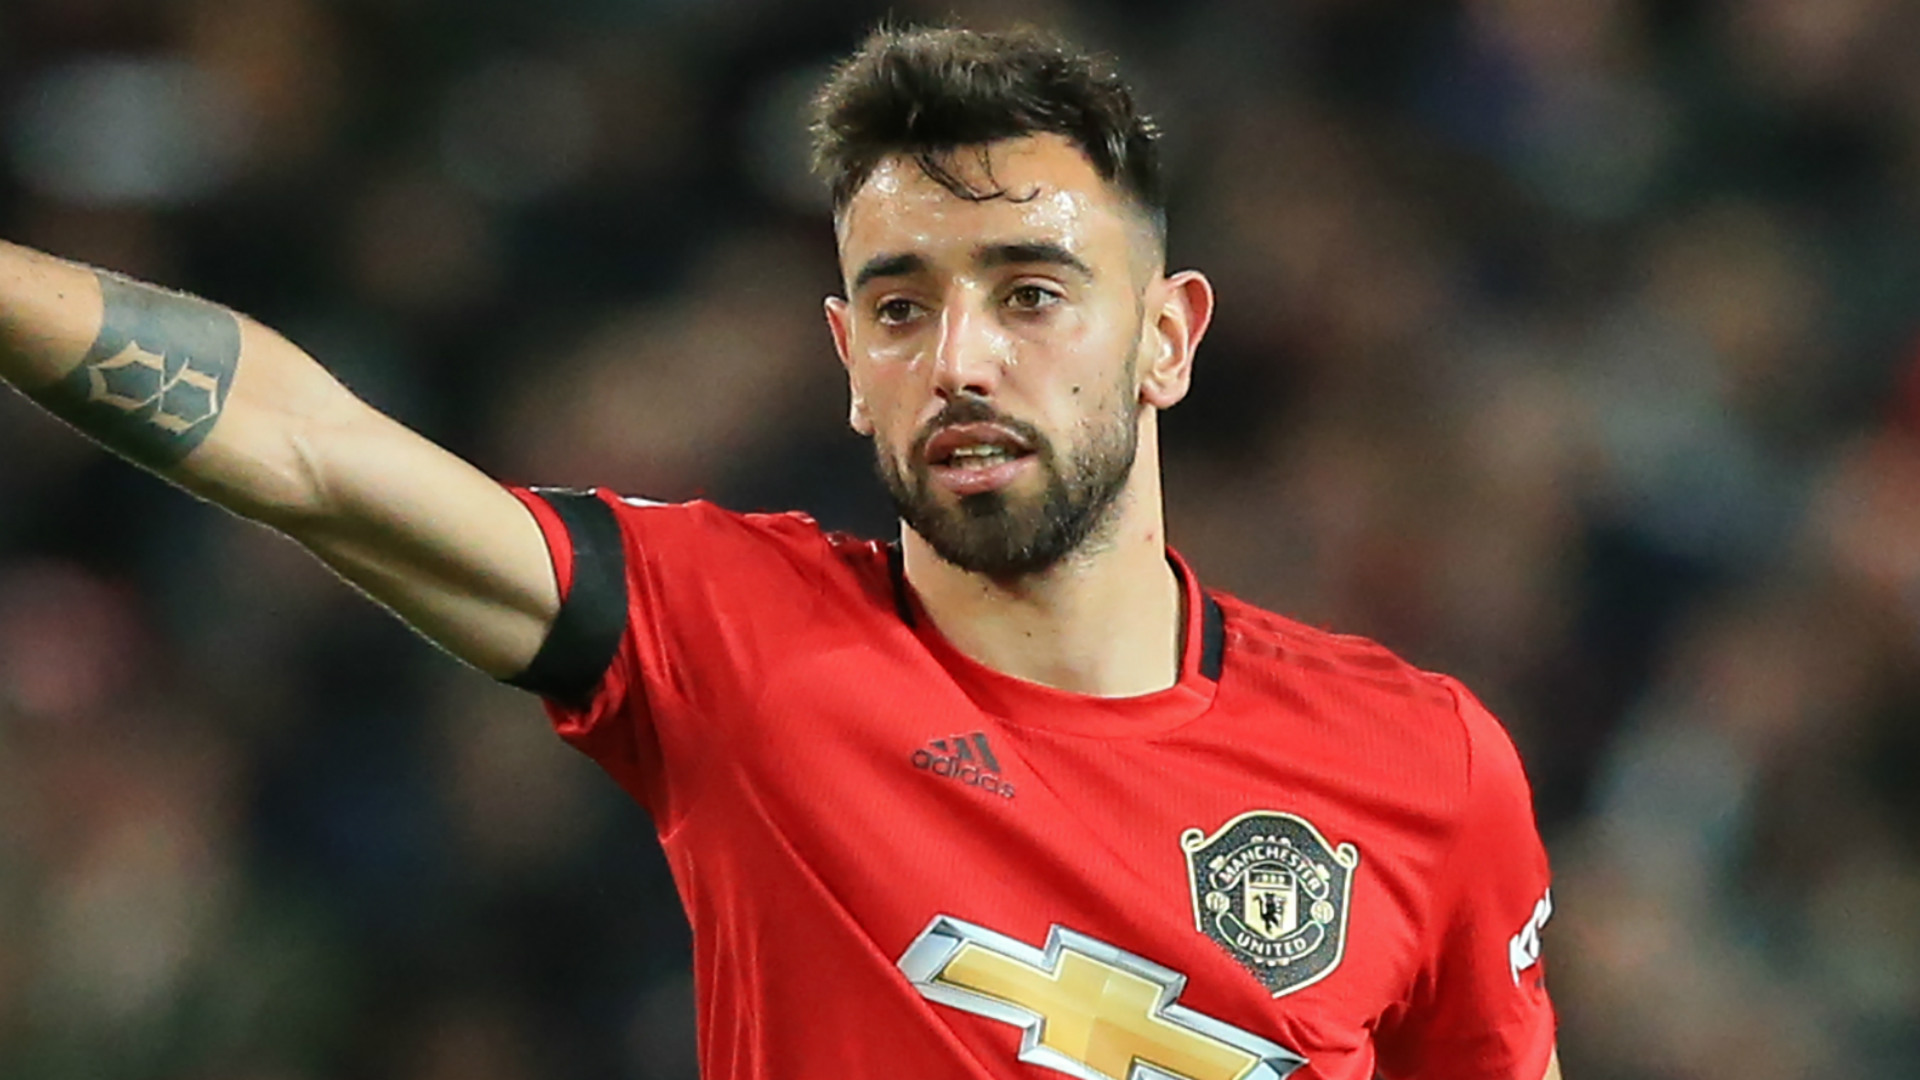 'Fernandes plays at his own speed like De Bruyne' – Hargreaves hails Man Utd's new talisman